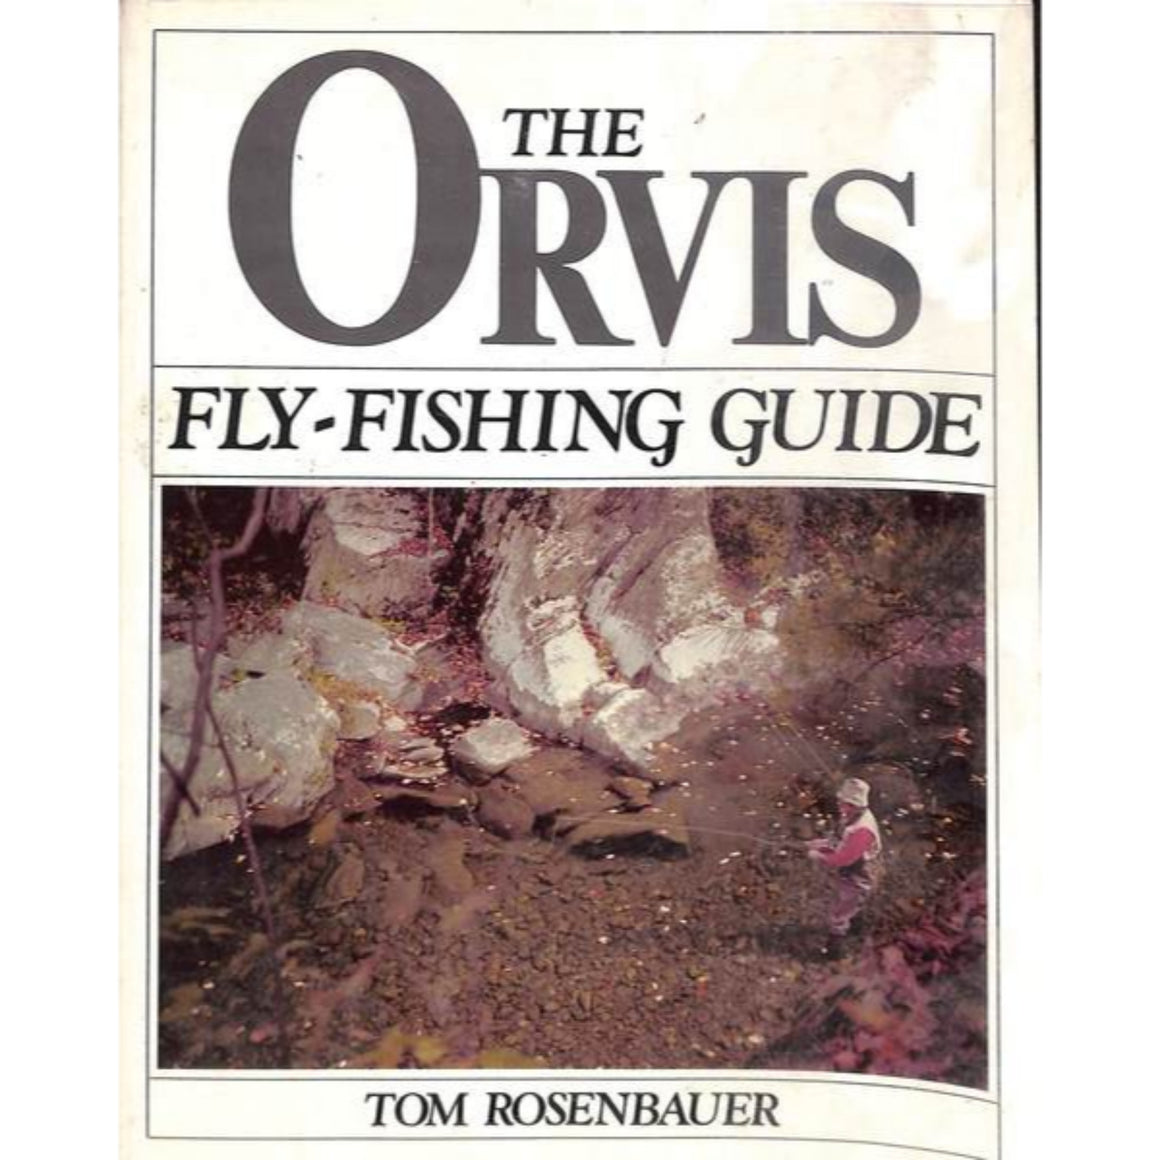 'The Orvis Fly-Fishing Guide' 1984